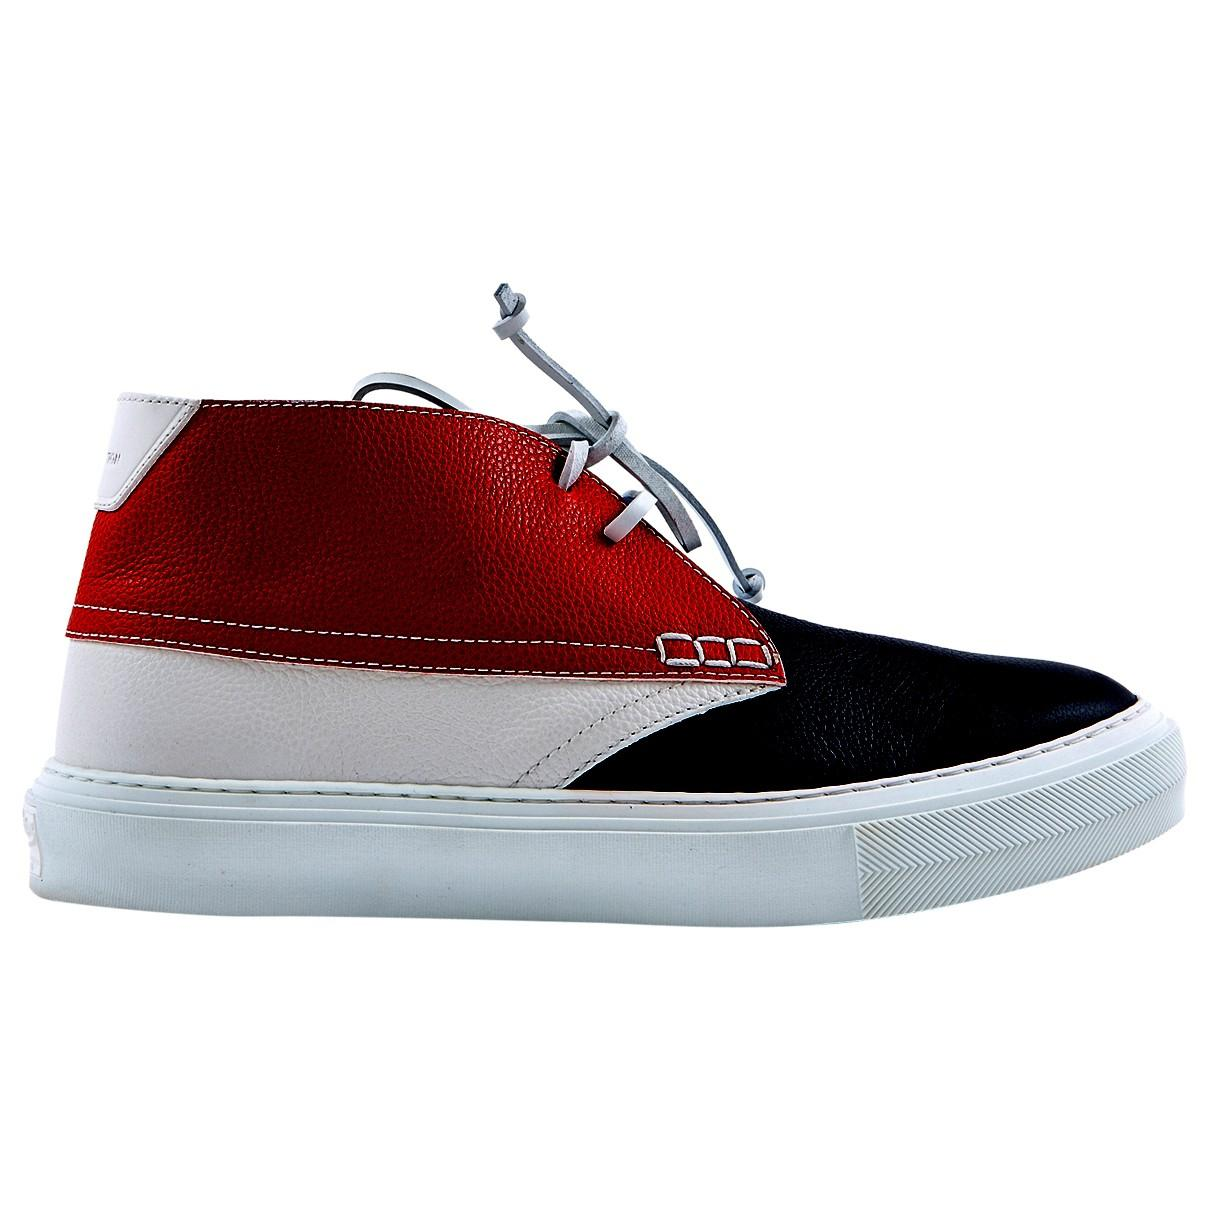 12e3b916ae0 Louis Vuitton. Men s Red Pre-owned Multicolour Leather Trainers. £344 From Vestiaire  Collective